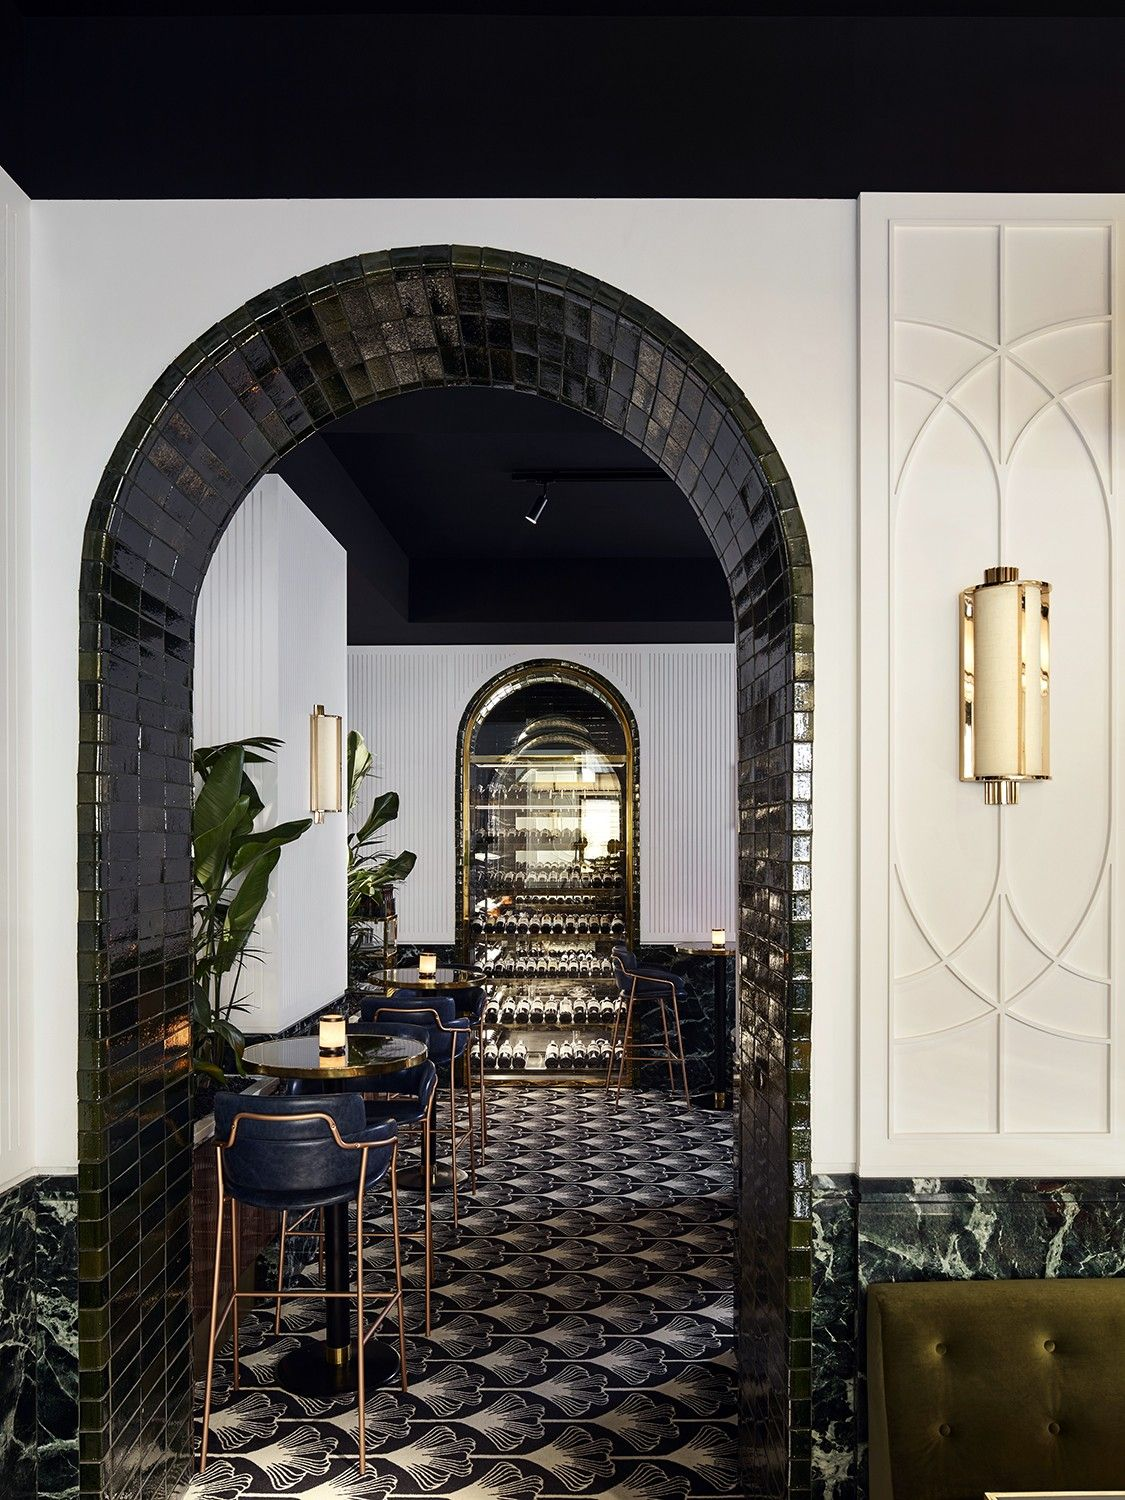 Paris restaurant maison object 20193 paris restaurant maison object 20193